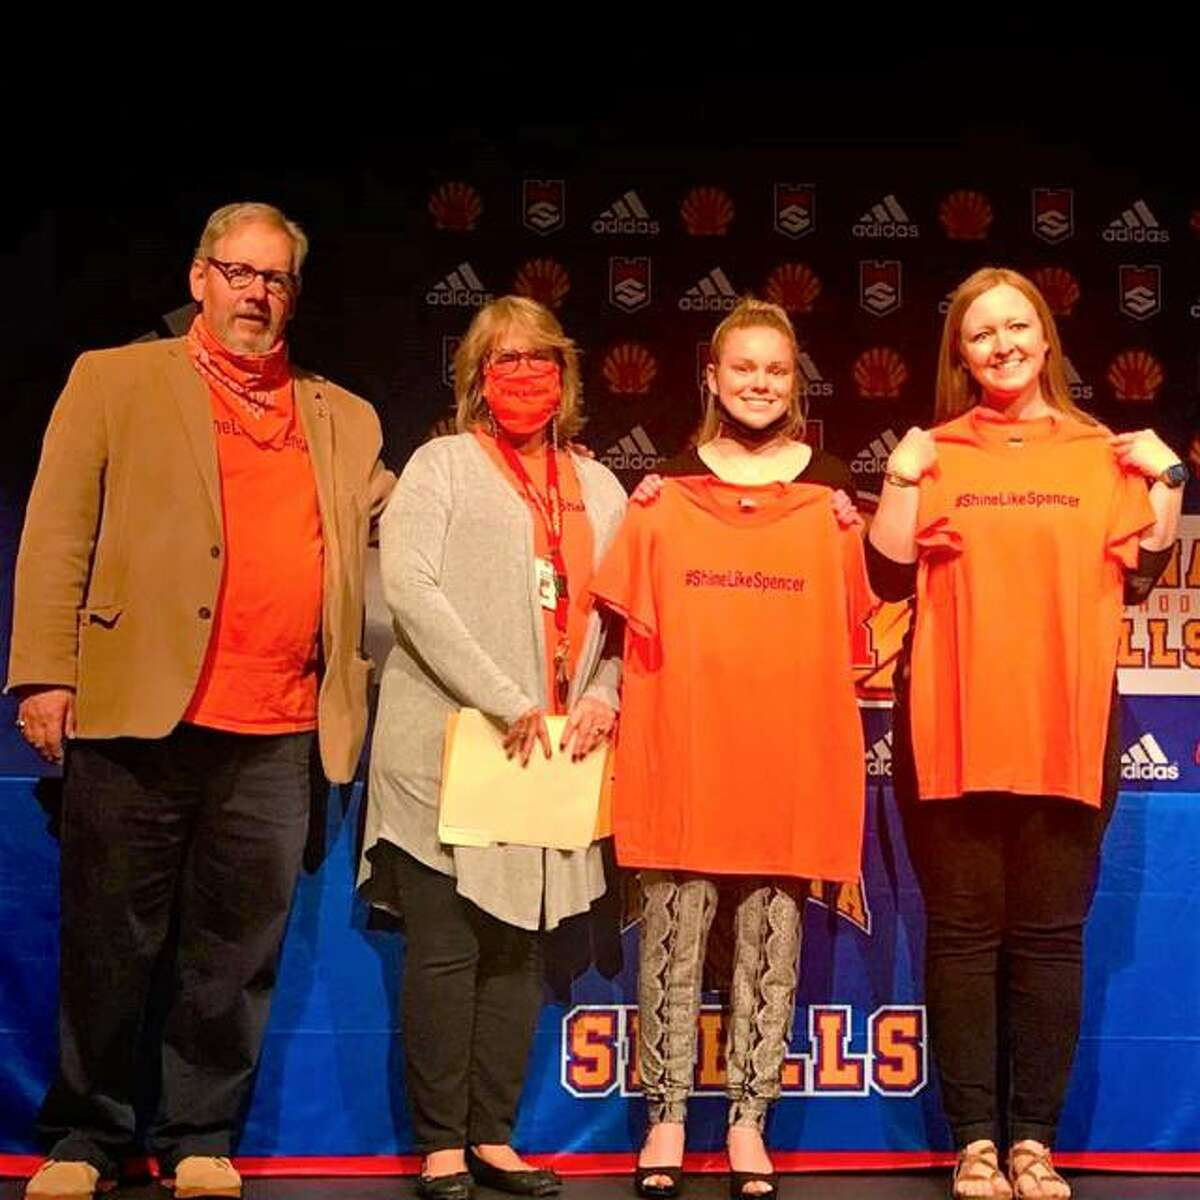 Left to right, Shine Like Spencer Kindness Award creators Mark Bacus and his wife, Debbie Bacus, stand with Roxana High School senior Emma Little and guidance counselor Jen Garrison, at the high school, as Little receives the $500 scholarship in the Bacuses' late son Spencer Bacus' name.